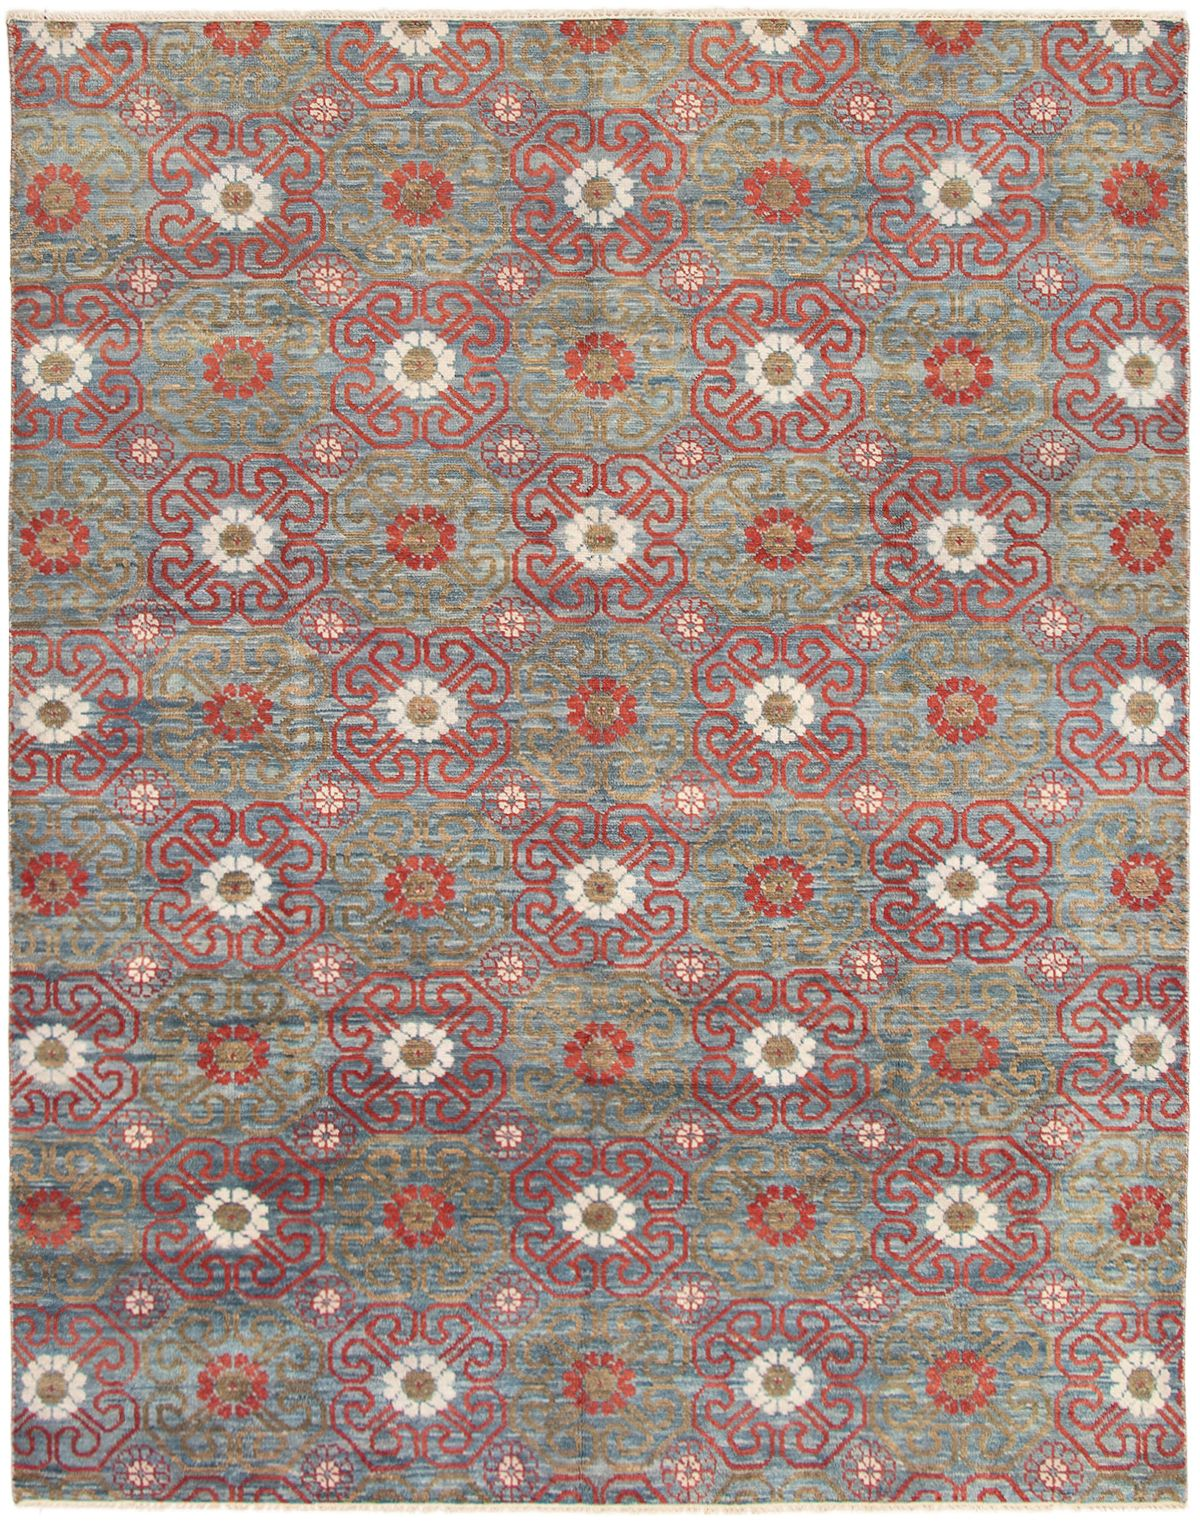 "Hand-knotted Finest Ushak Dark Red, Turquoise Wool Rug 8'0"" x 10'0"" Product Image"